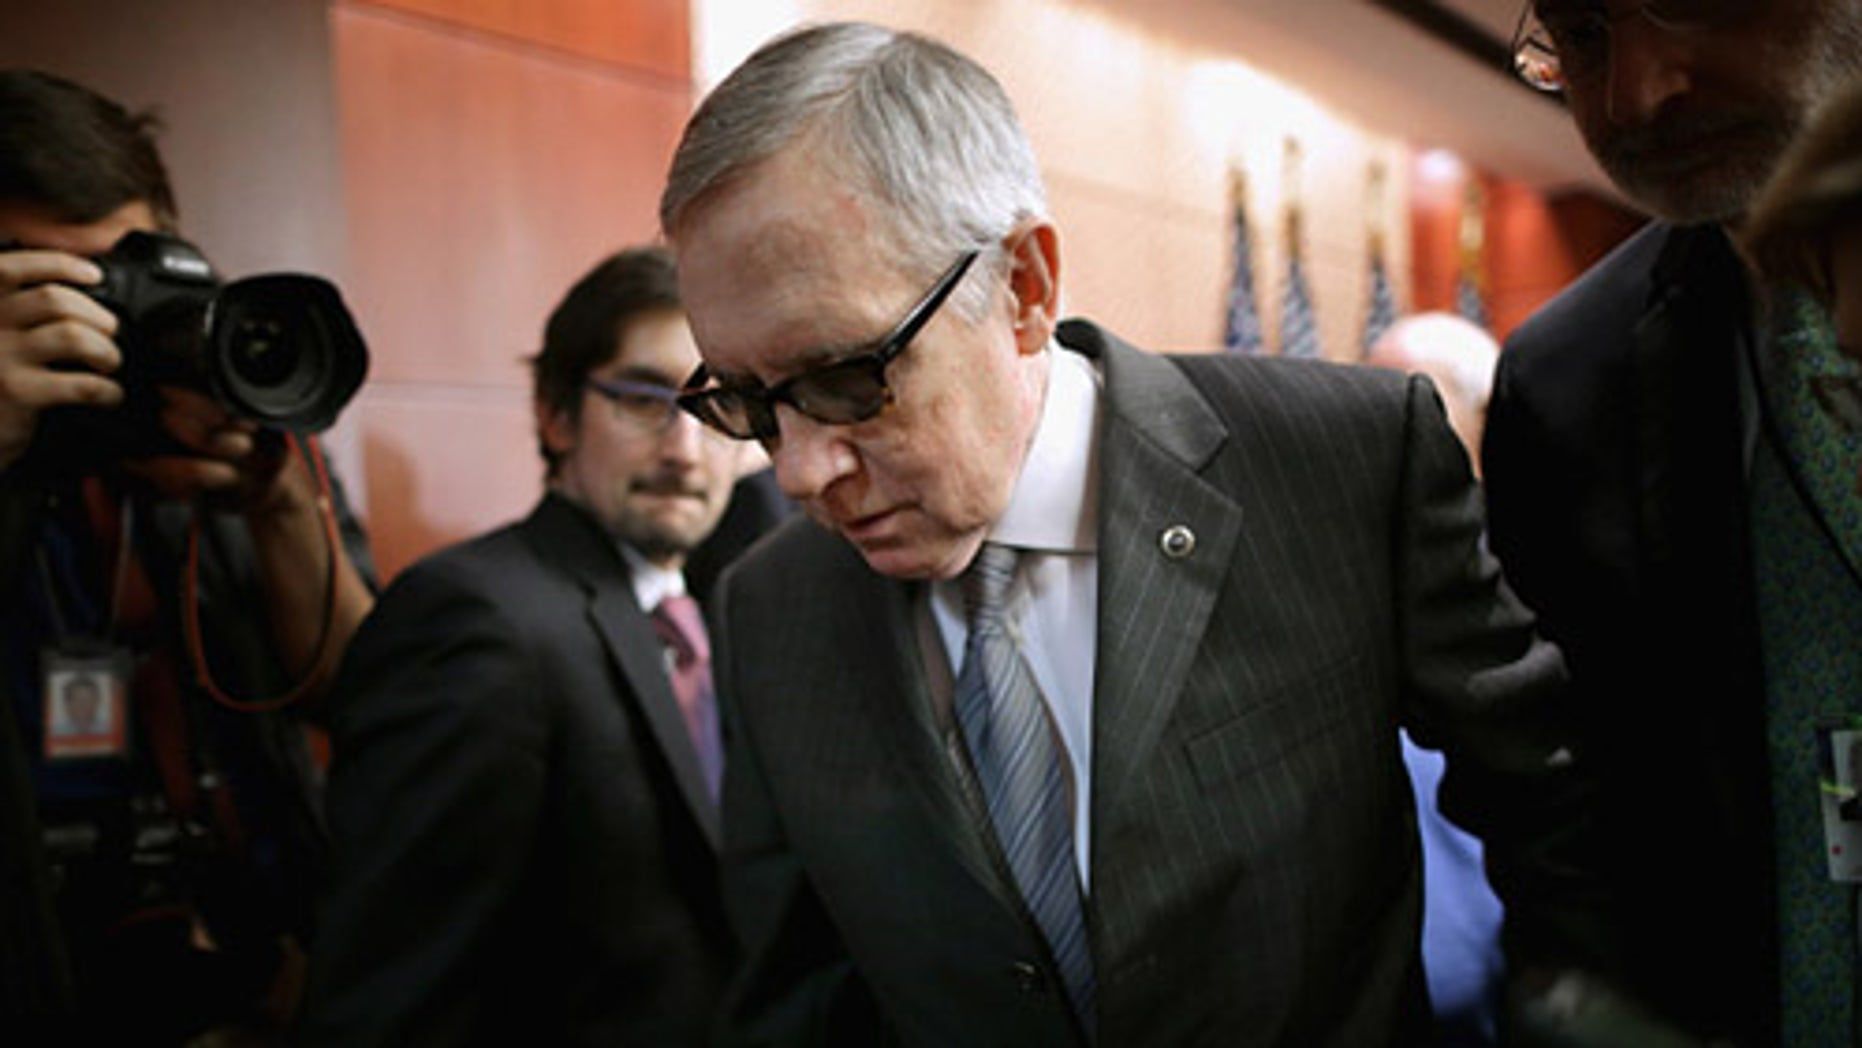 WASHINGTON, DC - FEBRUARY 24:  Senate Minority Leader Harry Reid (D-NV) leaves a news conference where he accused Republican Senate leaders of manufacturing the possible shutdown of the Department of Homeland Security at the U.S. Capitol February 24, 2015 in Washington, DC. Democrats have successfully blocked the $39.7 billion funding legislation because it would also strip away the executive actions in which President Barack Obama eased the deportation threat for several million undocumented immigrants. If Republicans and Democrats can not work around the impasse then 30,000 DHS employees will go home February 28 and 200,000 more will work without paychecks until a solution is found.  (Photo by Chip Somodevilla/Getty Images)